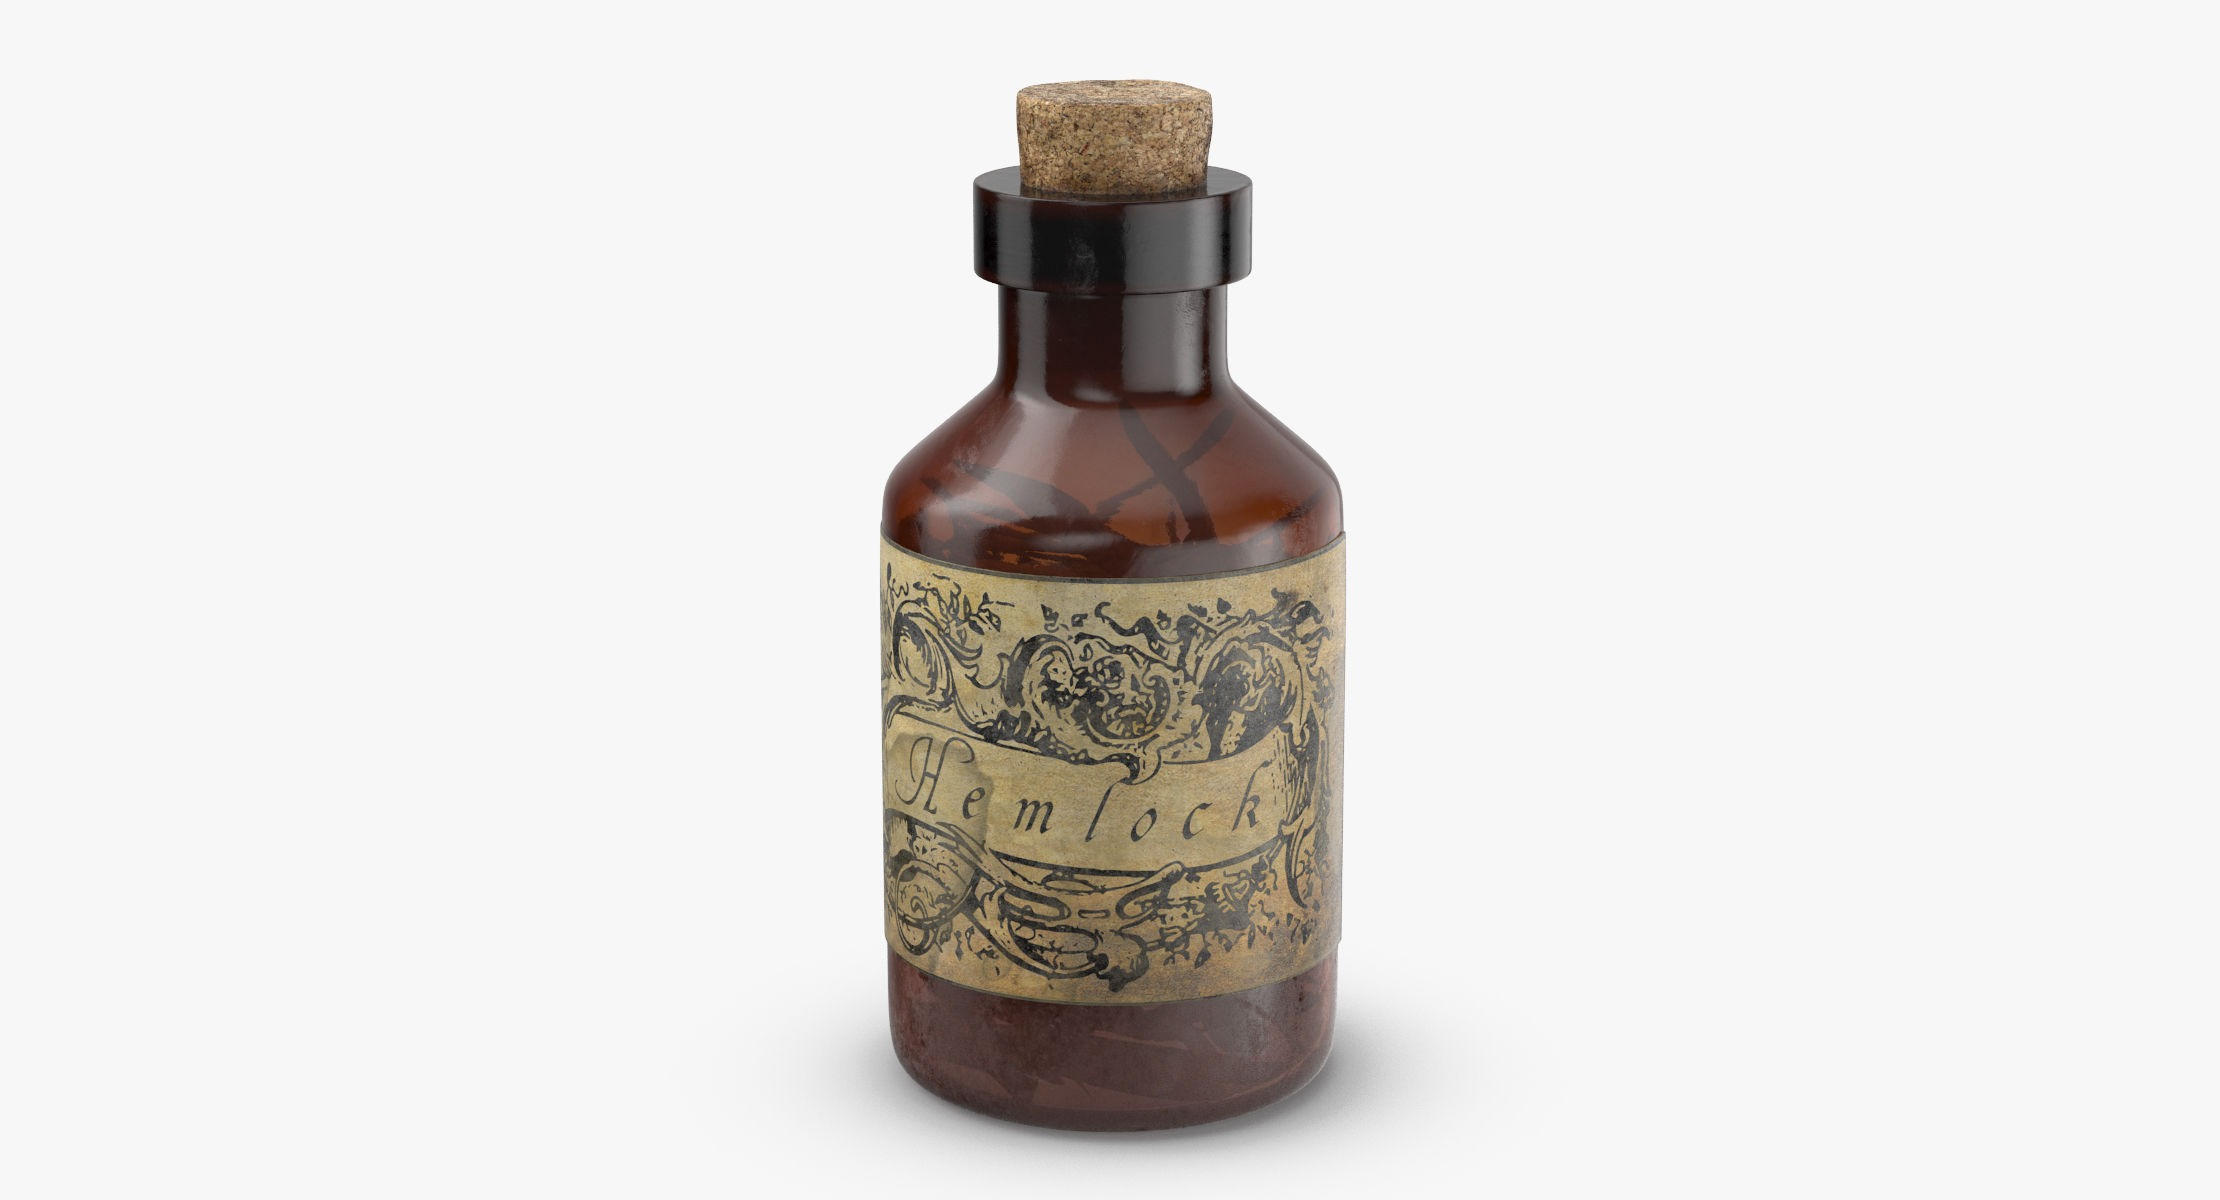 Potion Ingredient Jar - Hemlock - reel 1